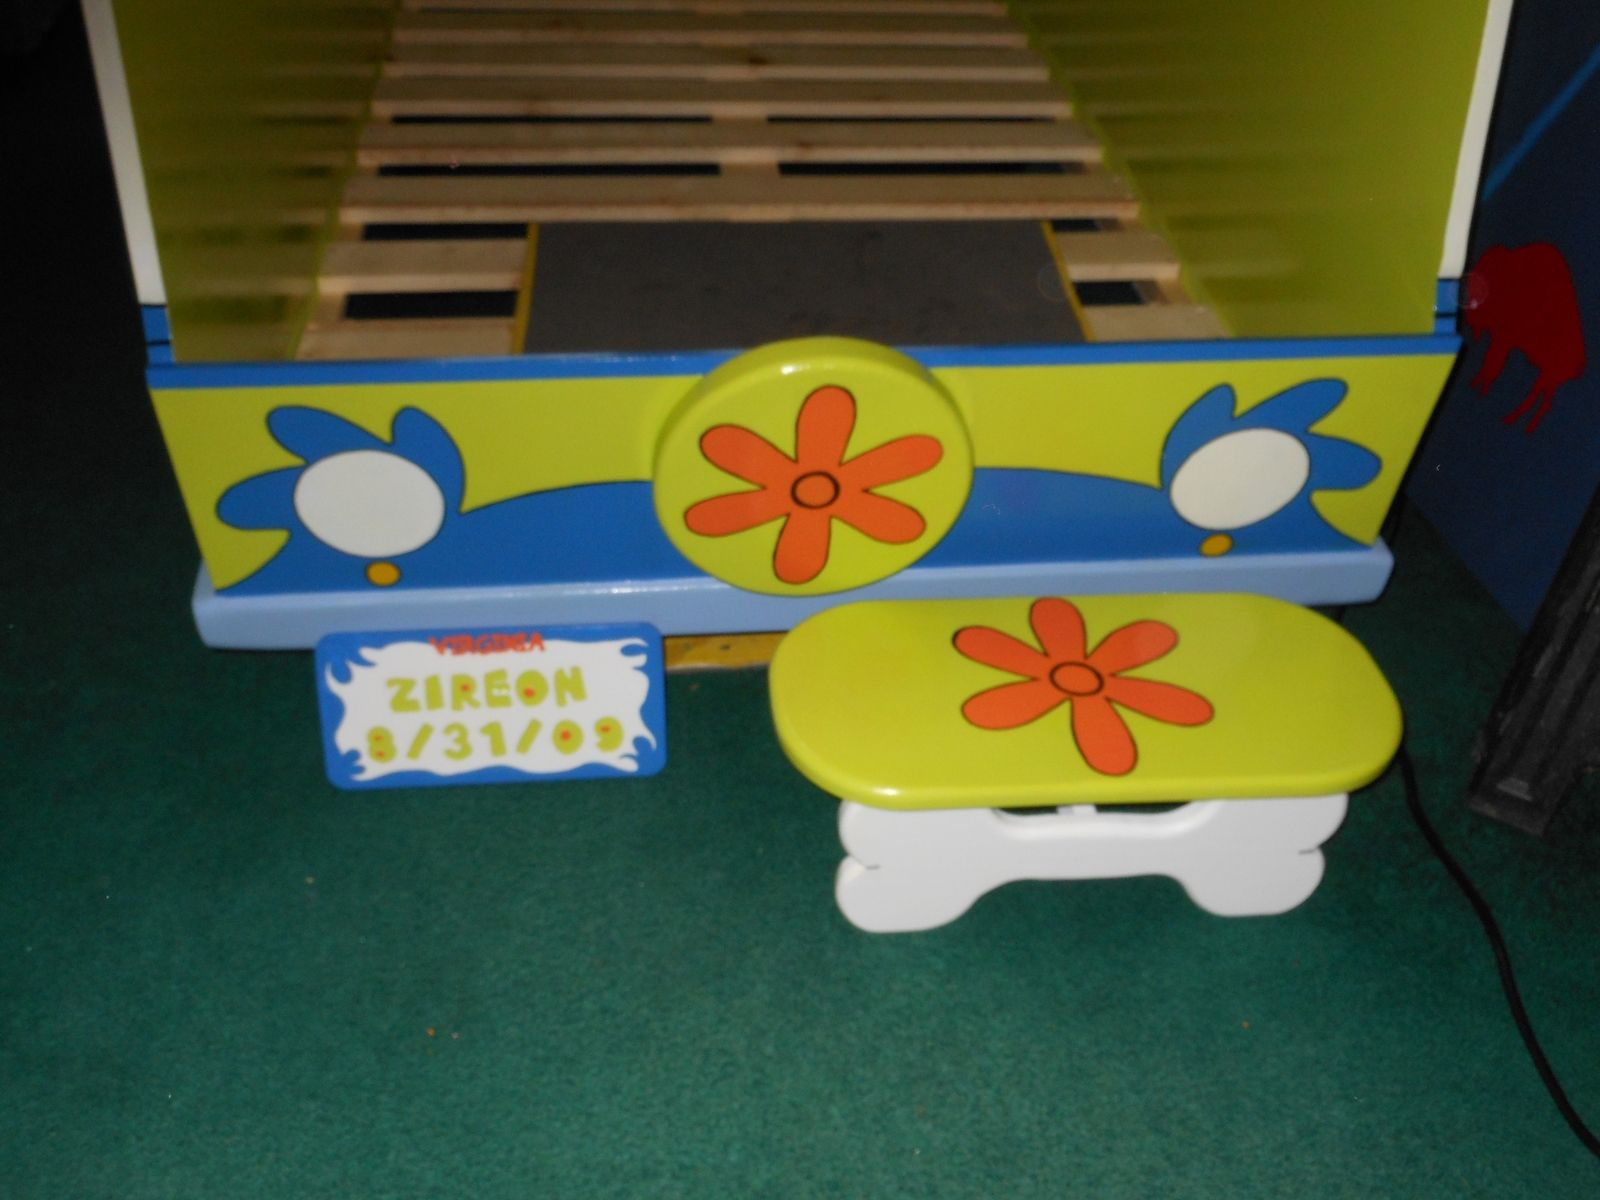 scooby doo chair buy blue bay rum online a hand made twin size toddler bed quotscooby themed